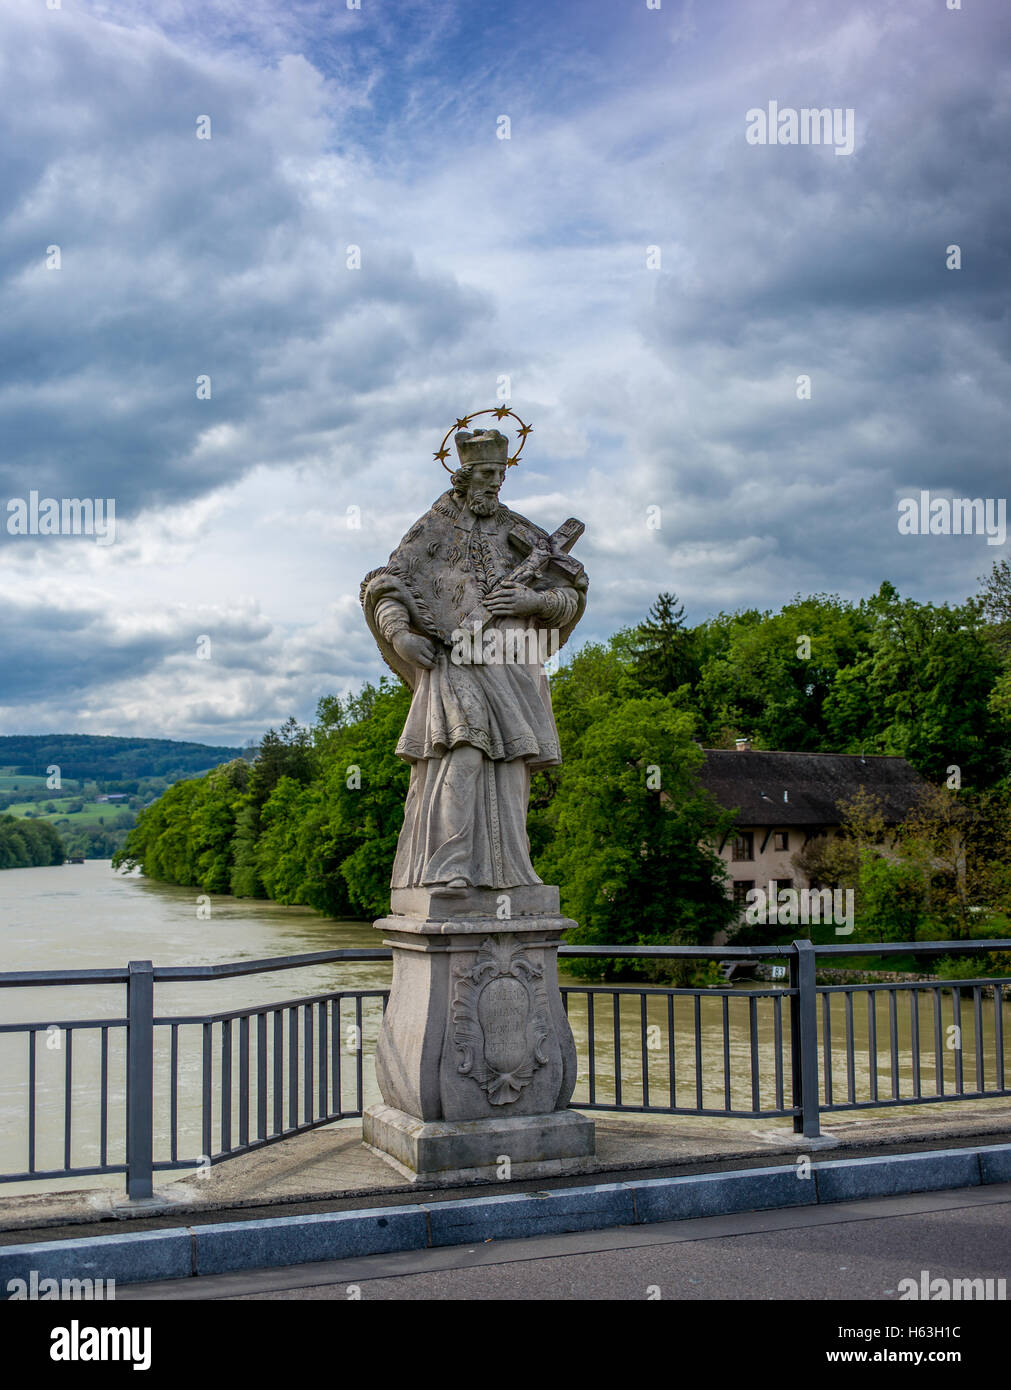 Statue on the Rhine brige signaling entrance into Germany - Stock Image